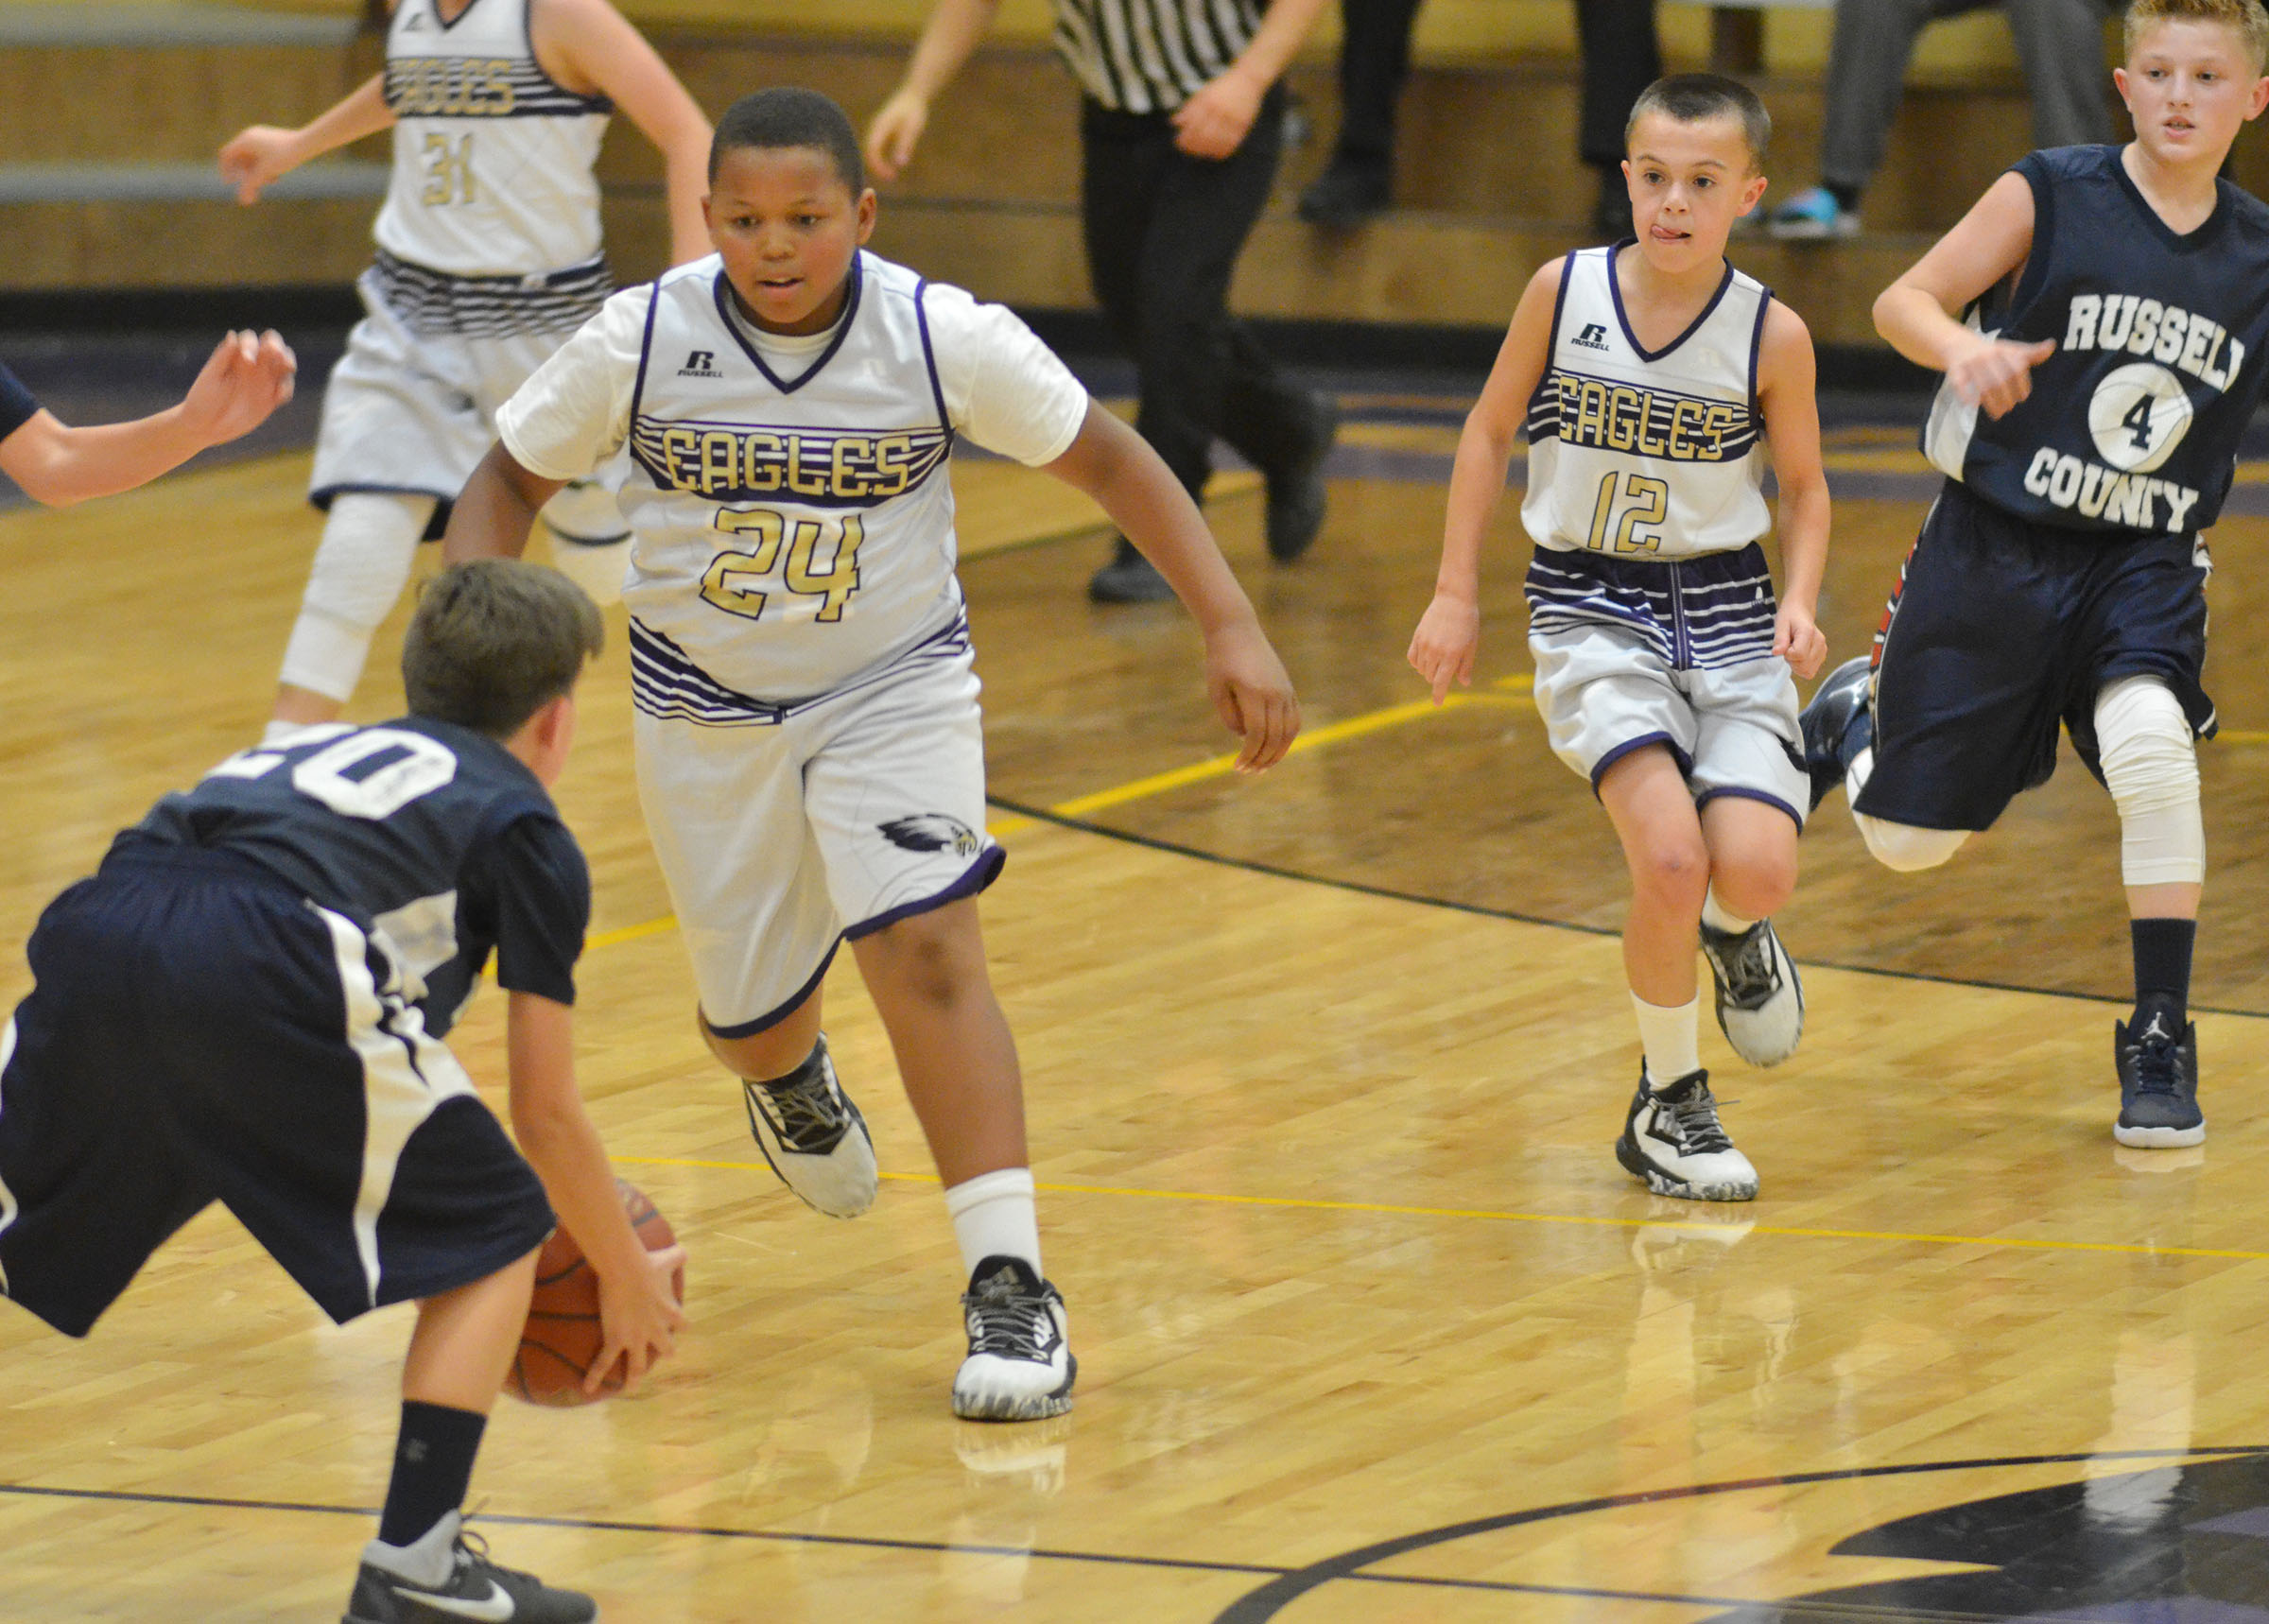 CMS sixth-graders Keondre' Weathers, at left, and Chase Hord play defense.